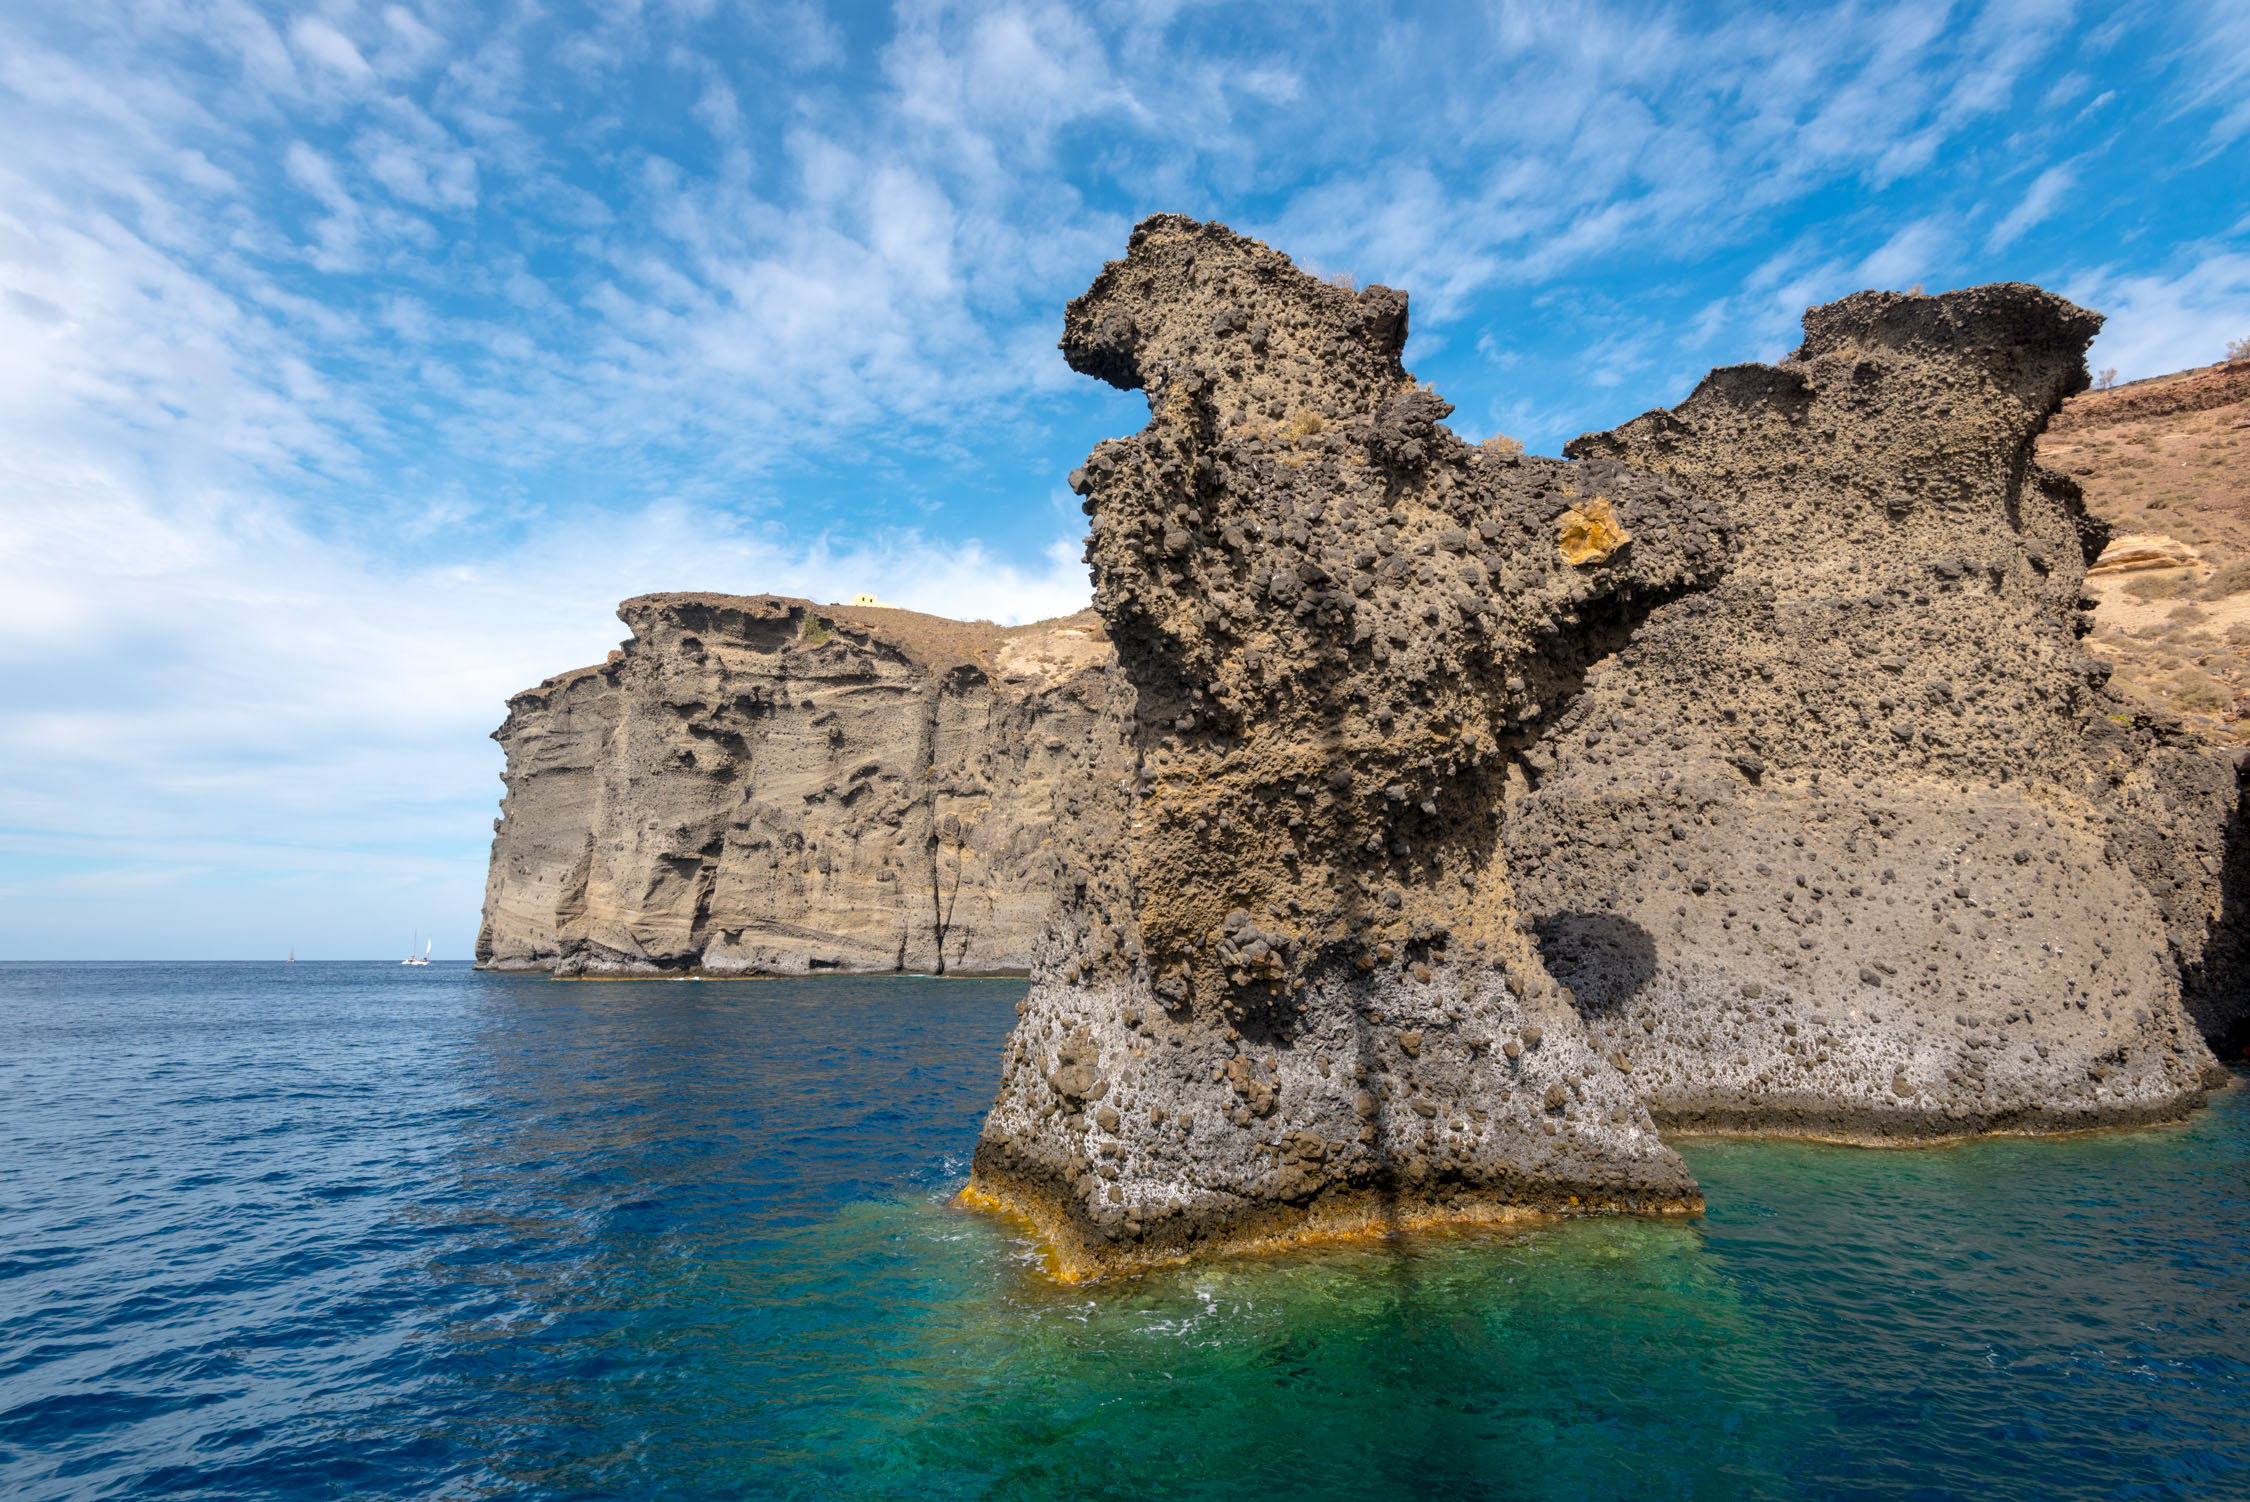 Rock formations scattered around the island of Santorini